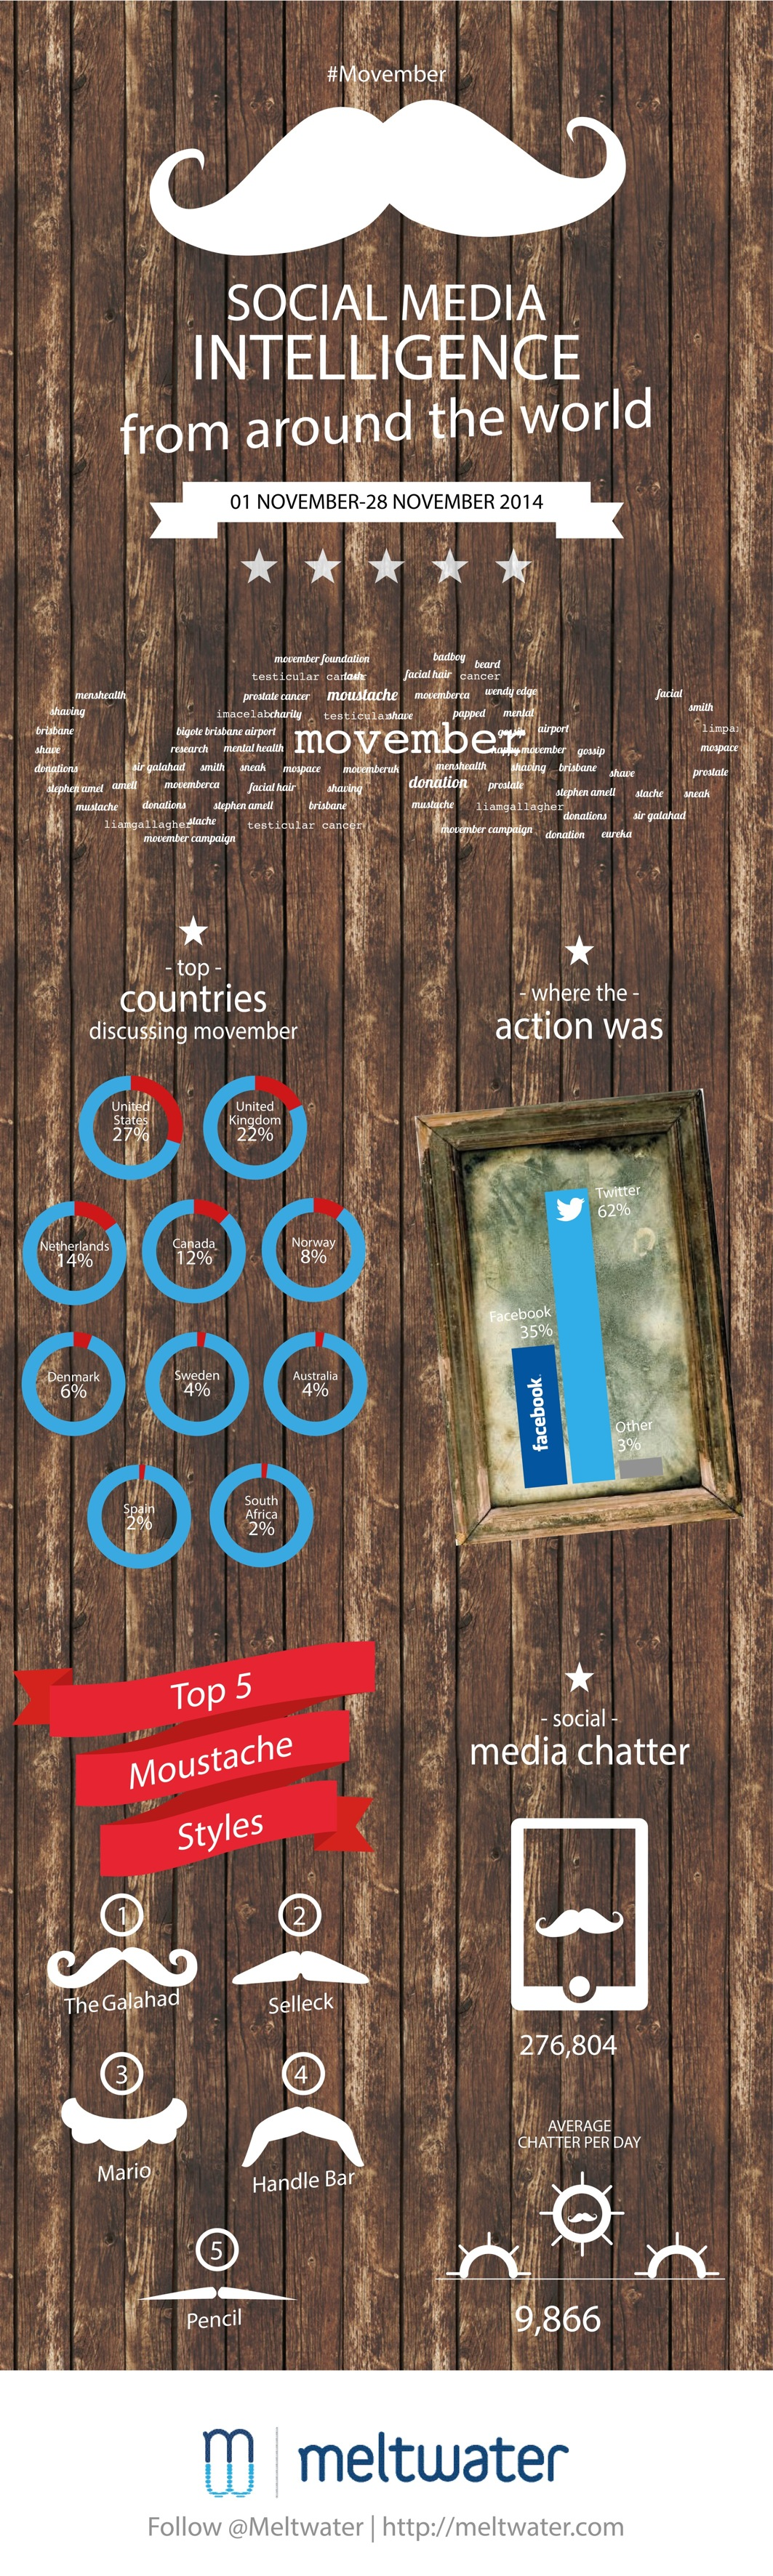 Meltwater Movember 2014 infographic